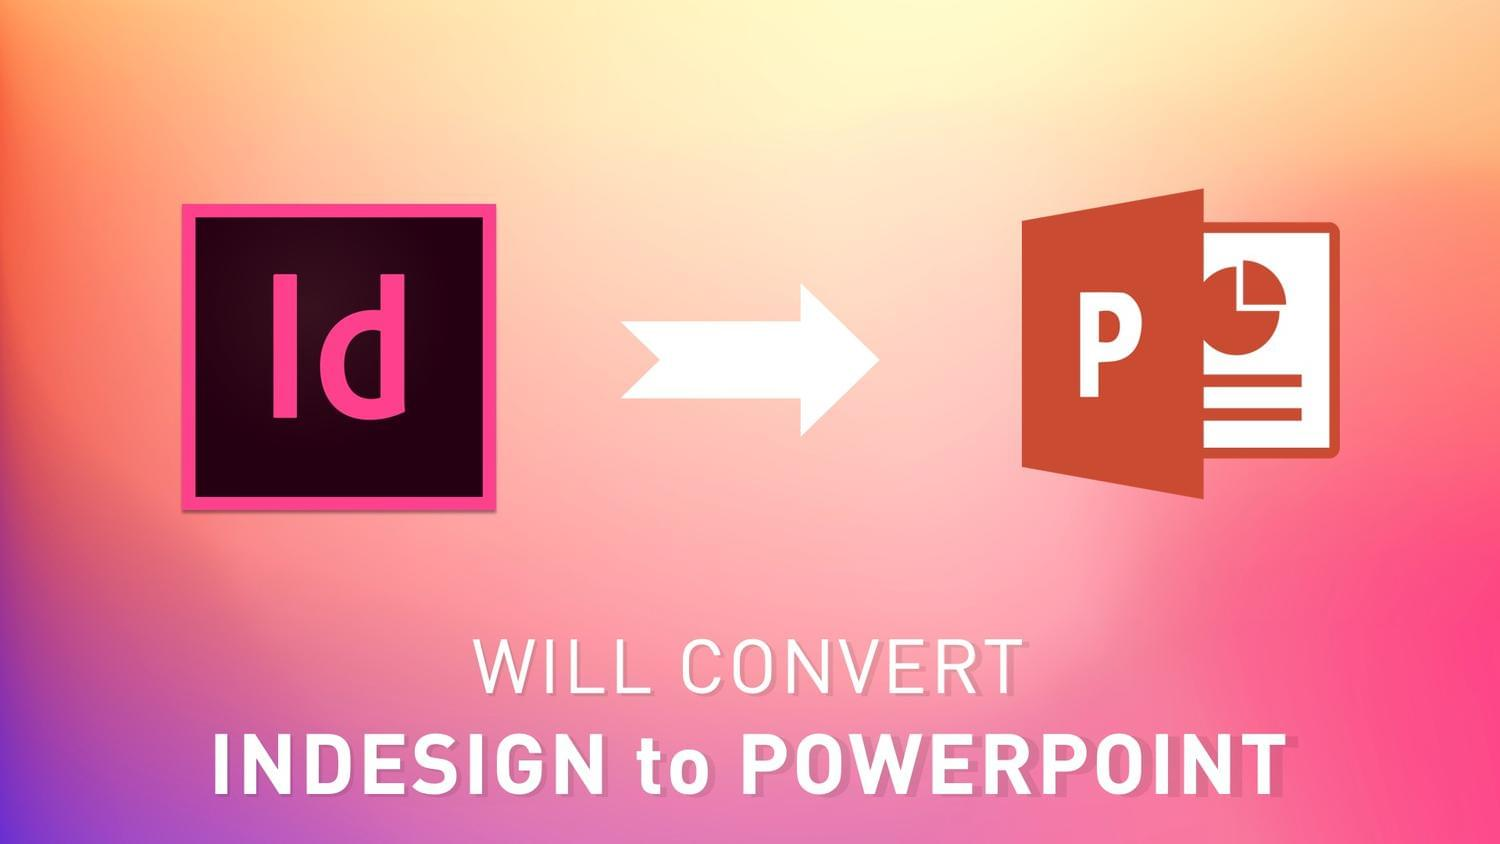 Convert InDesign To PowerPoint by arvaone - 115091